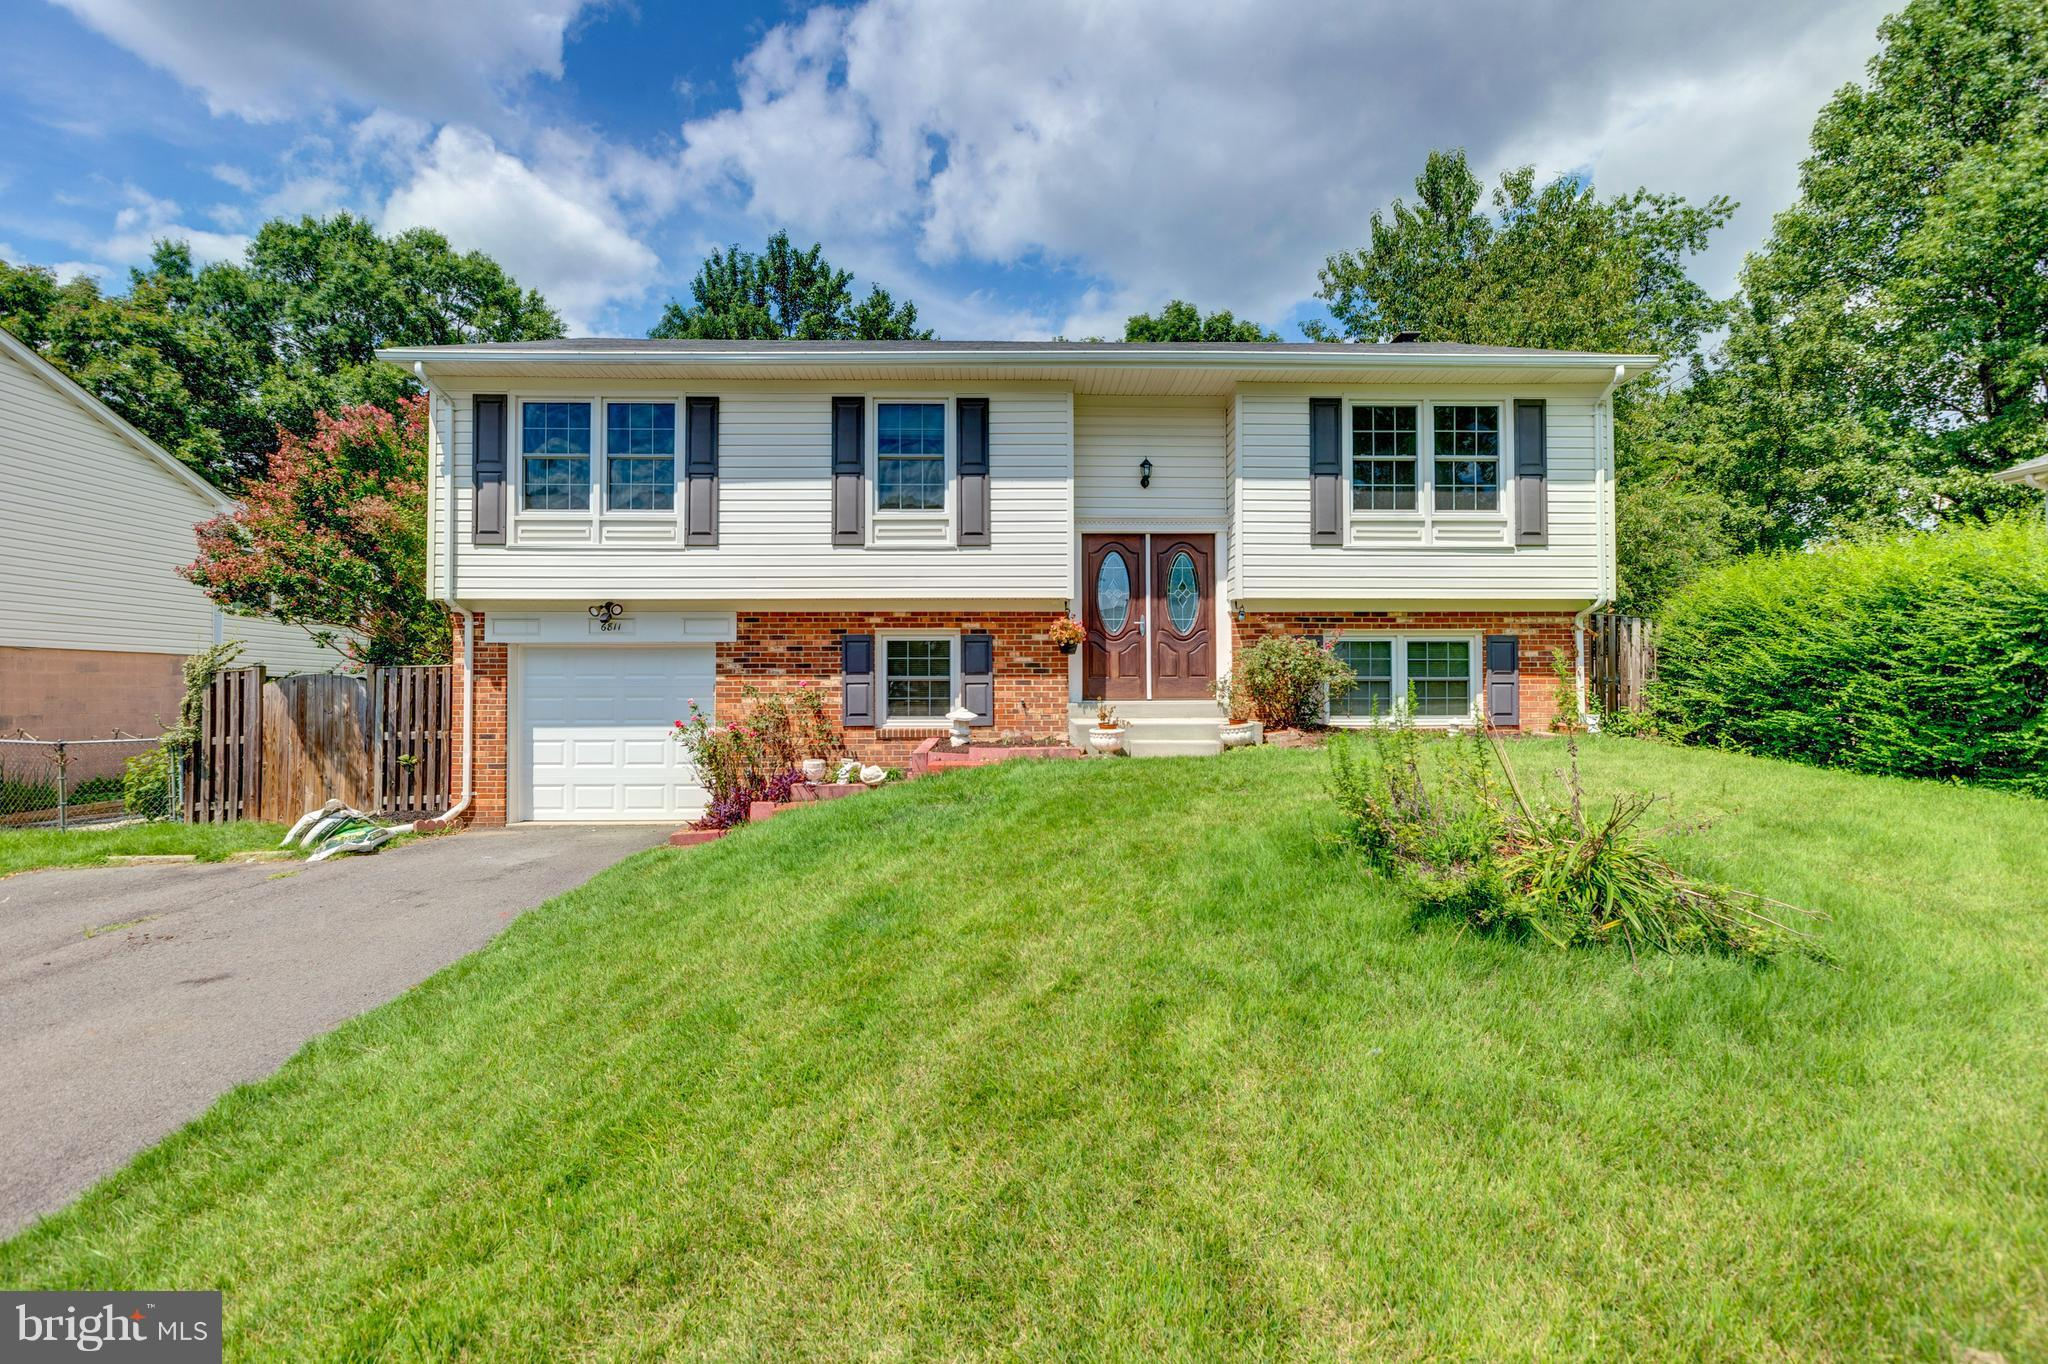 Great home, priced to sell!  Brand new kitchen, cabinets, appliances, granite!  4 Bedrooms and 2.5 baths, 1 car garage!  In a quiet cul-de-sac!  Walkout basement. Private fully-fenced back yard w/shed. Incredible location, easy access to Springfield Town Center, Metro, Restaurants, I-95, Fort Belvoir & more!